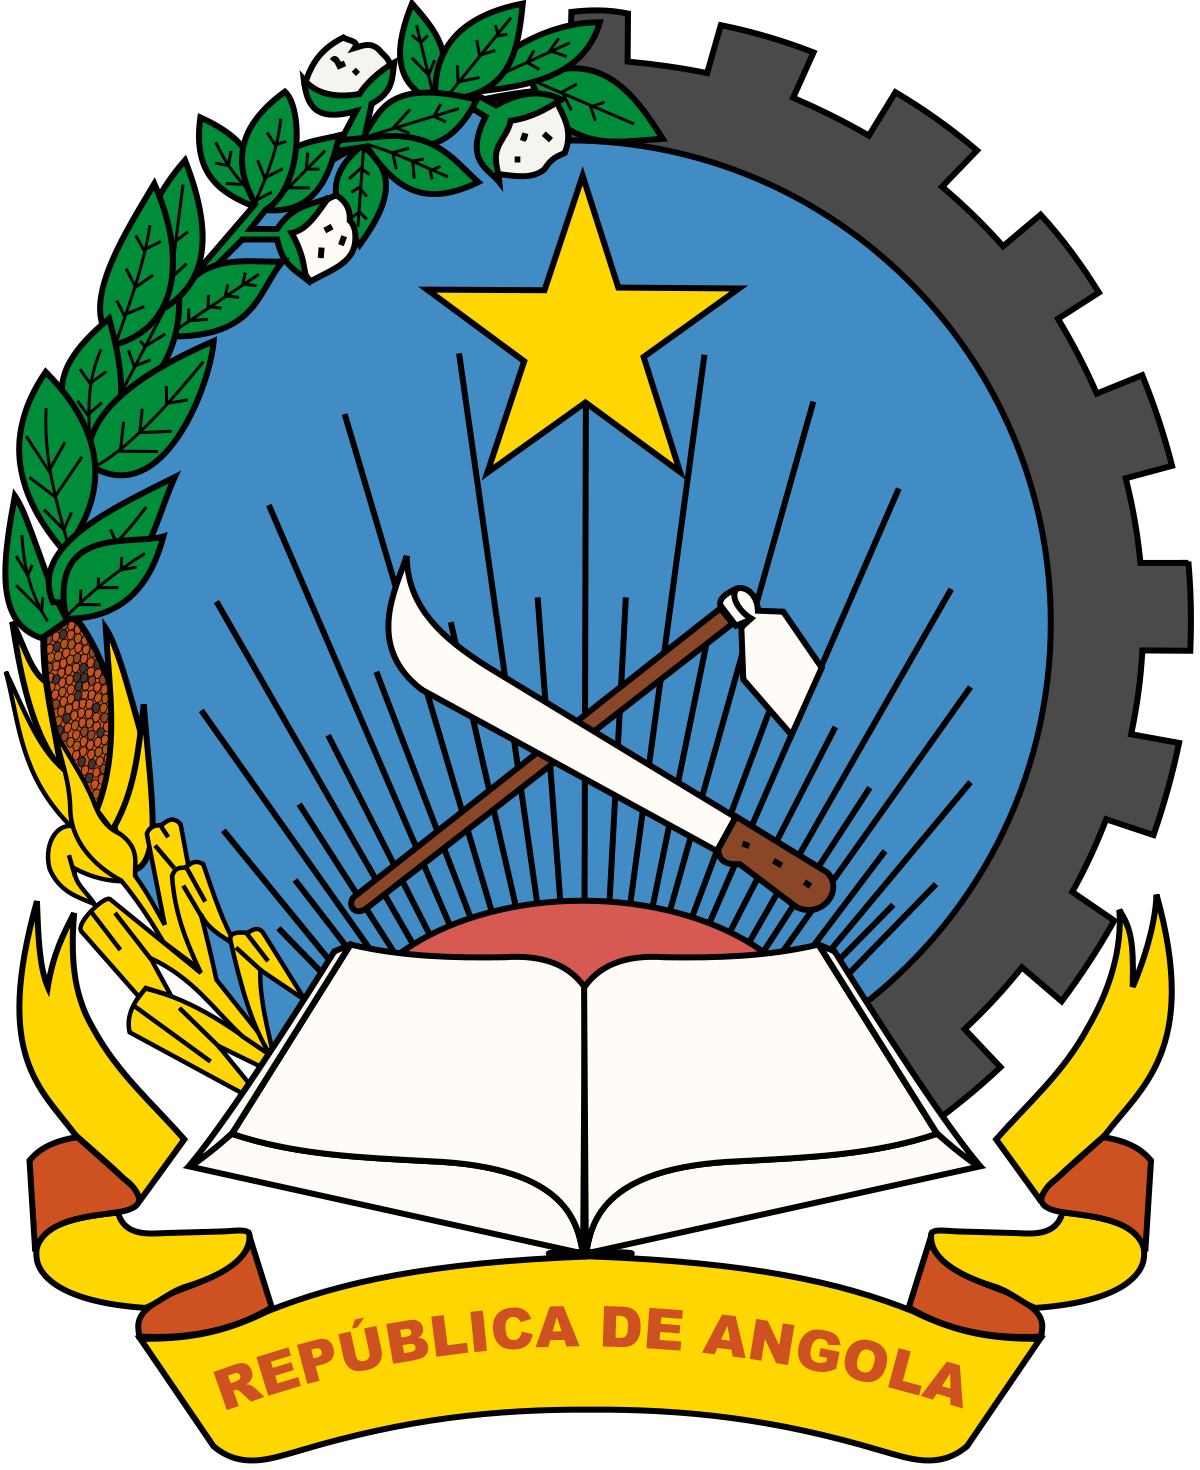 Angolan general election wikipedia. Conflict clipart diplomacy